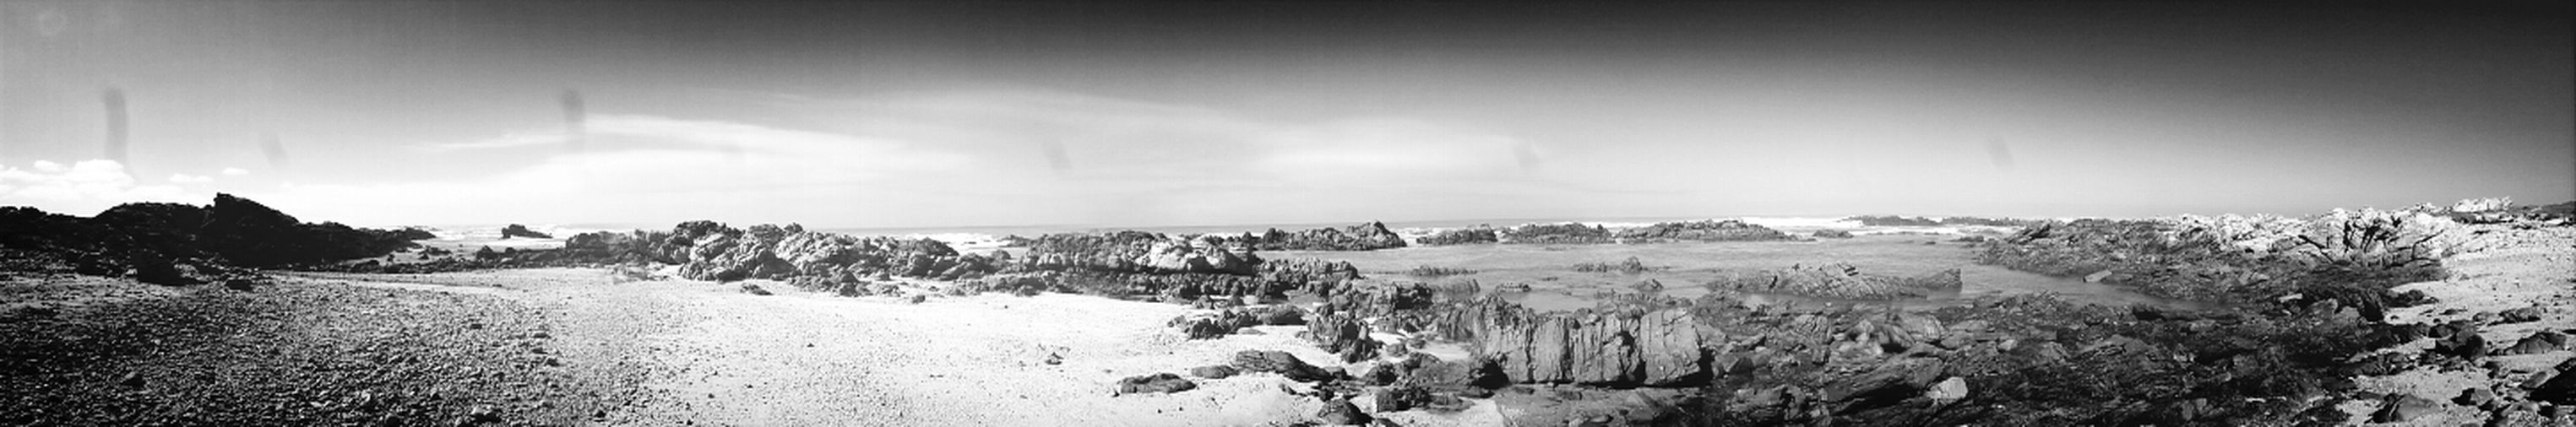 Southernmost Point in Africa Landscape_Collection Monochrome